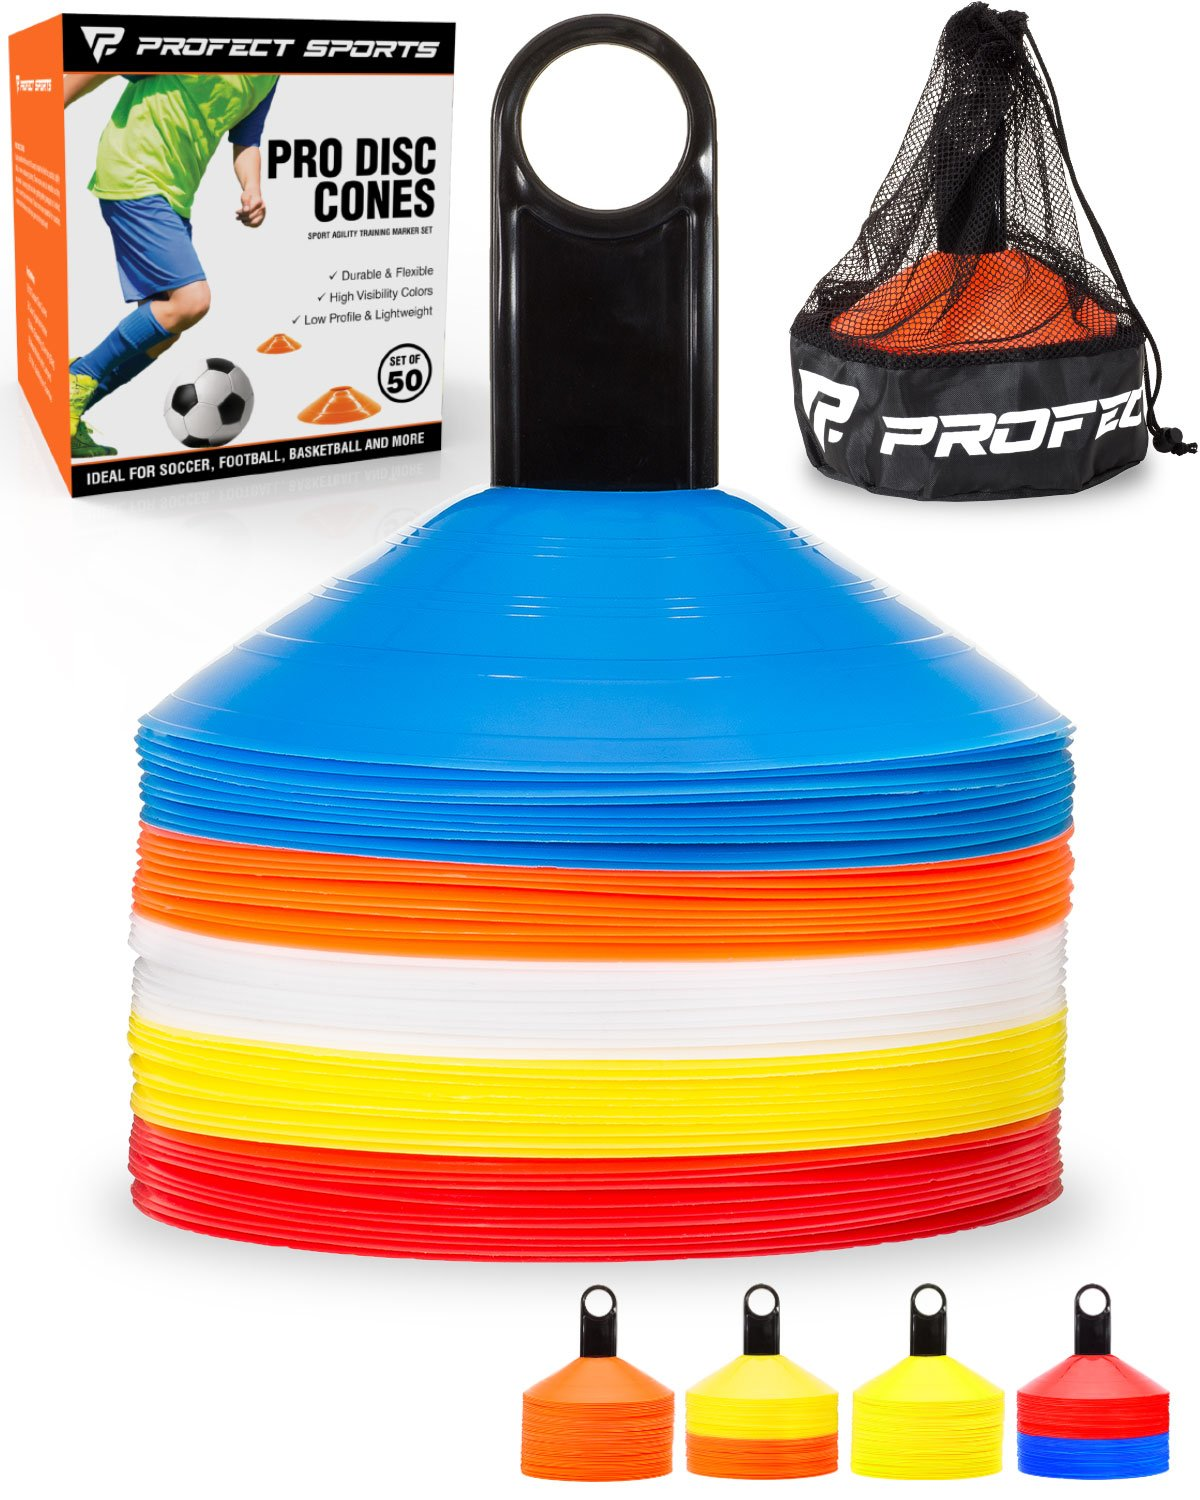 c4cd4536e Buy Pro Disc Cones (Set of 50) - Agility Soccer Cones with Carry Bag ...